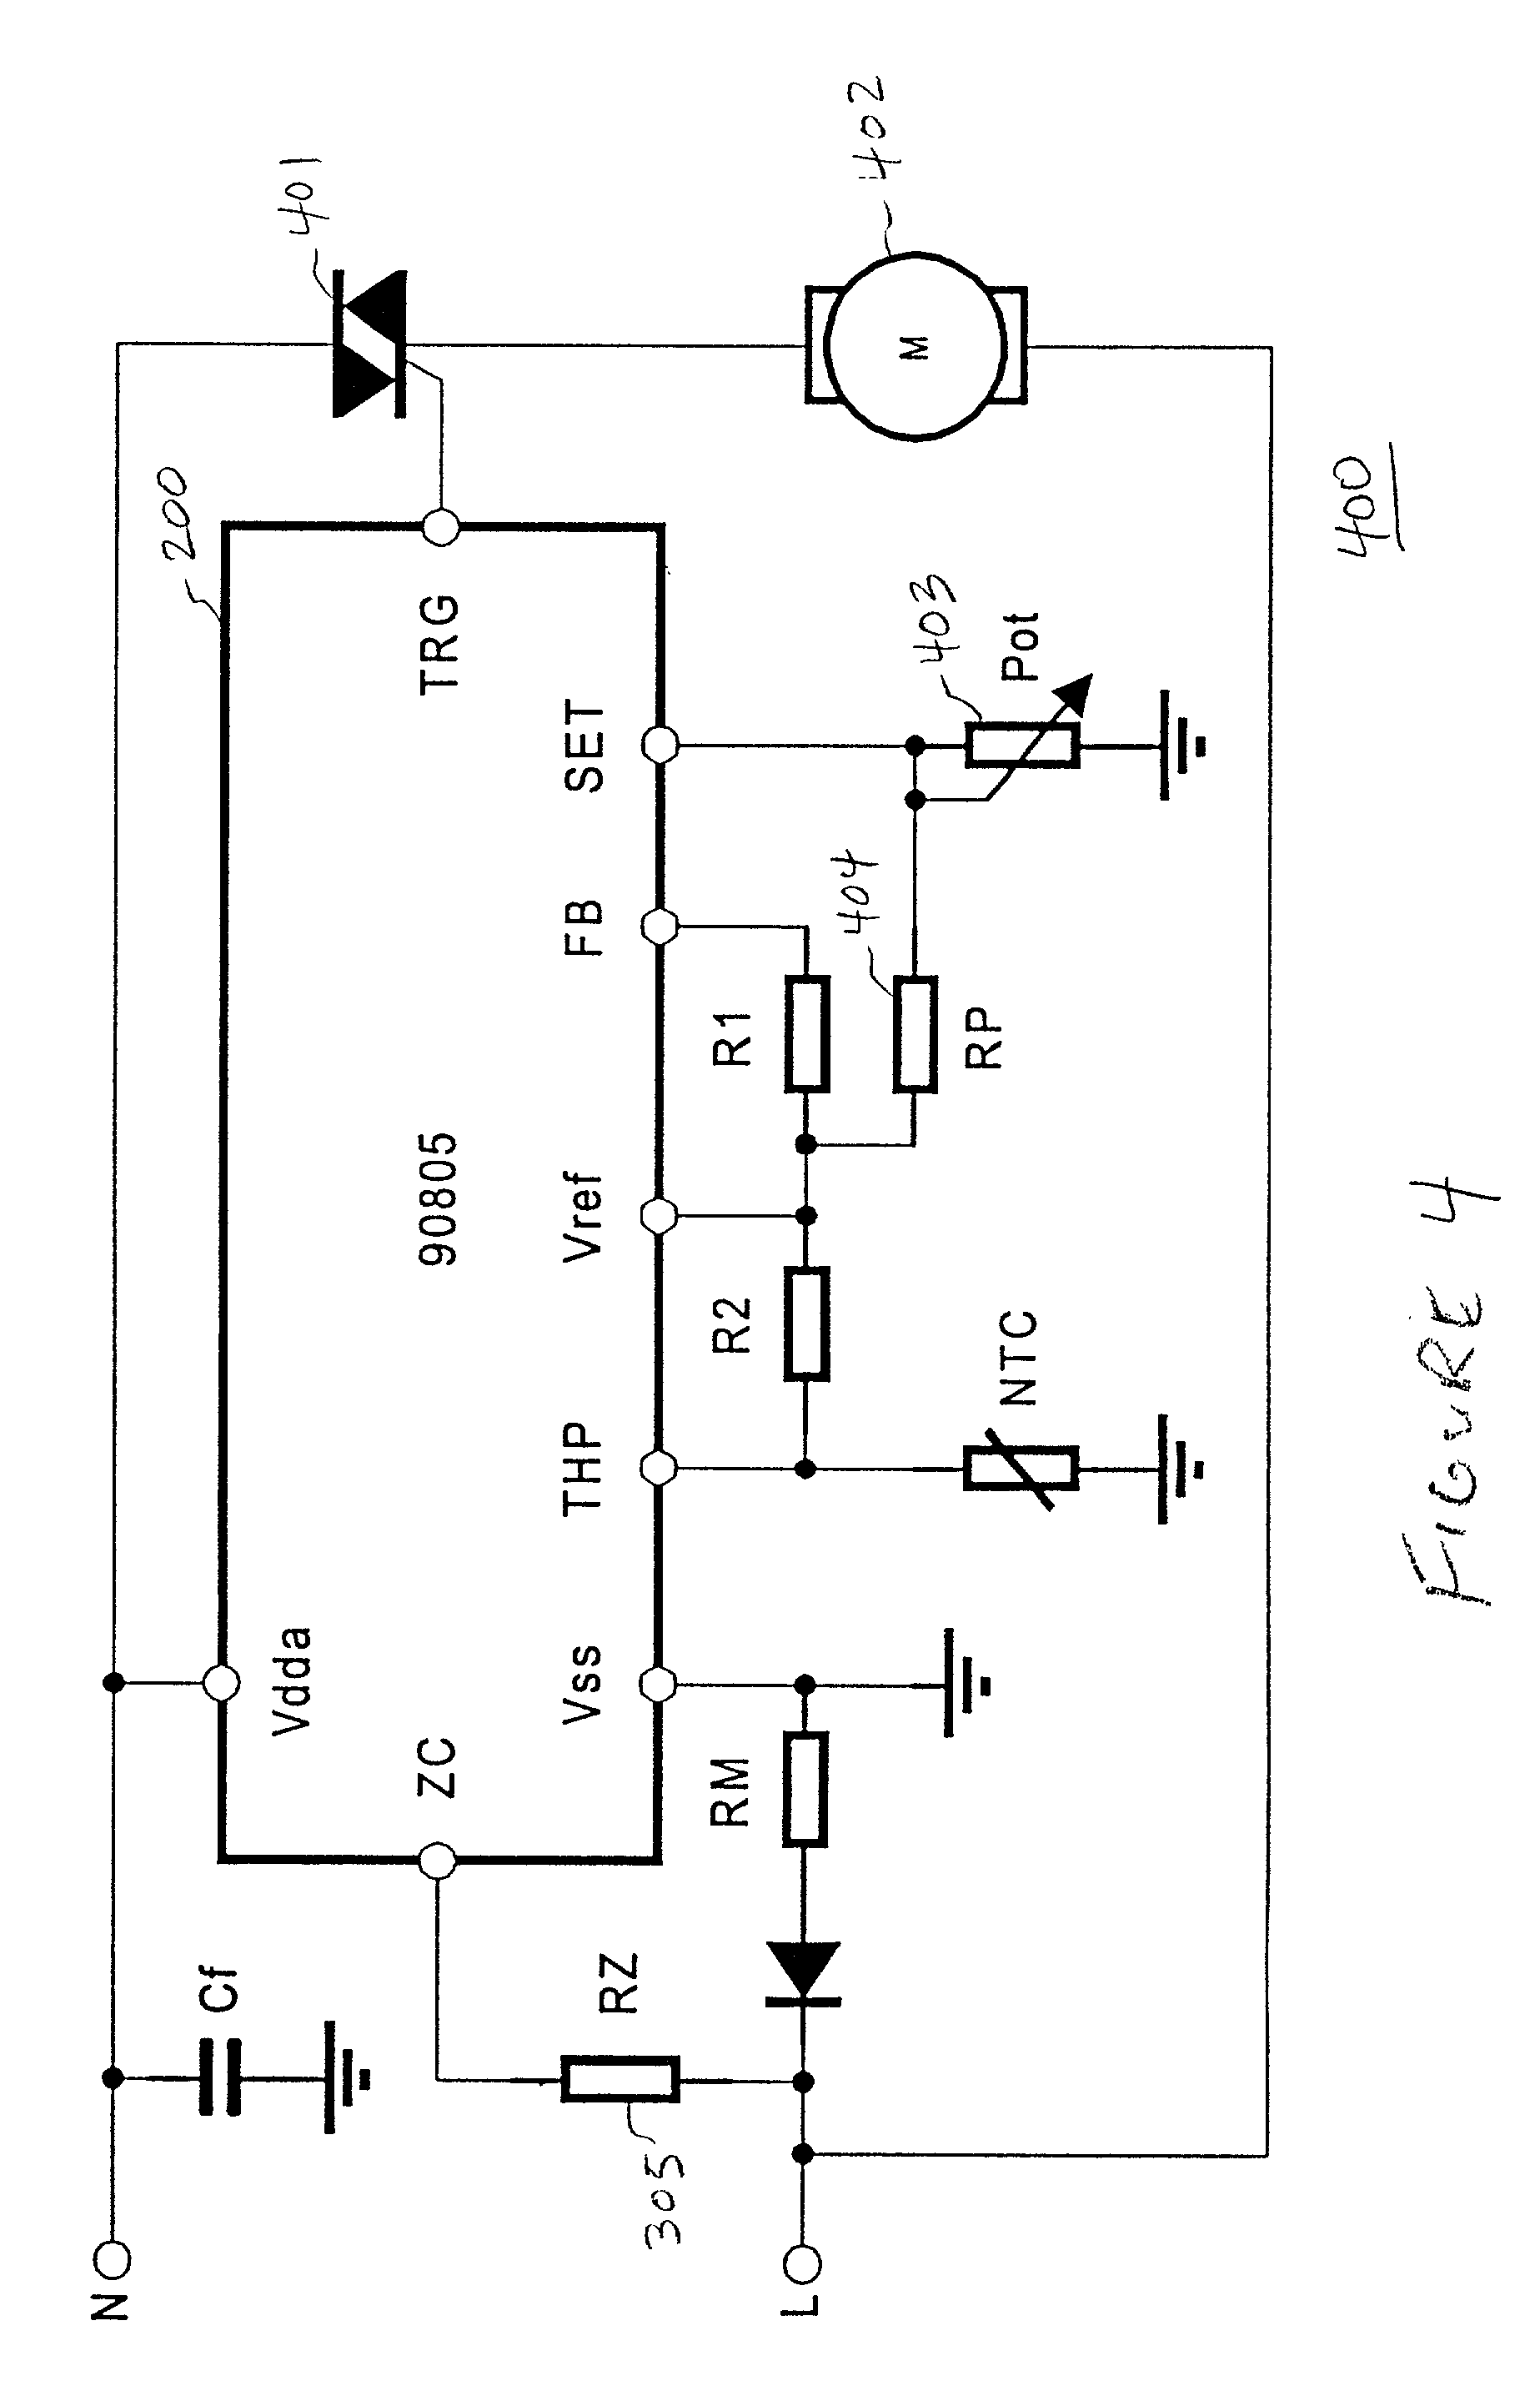 Images Of Top Triac Circuit Design Calto Basic Triacscr Projects Circuits Tutorial Patent Us20010028239 Controller Having Soft Start